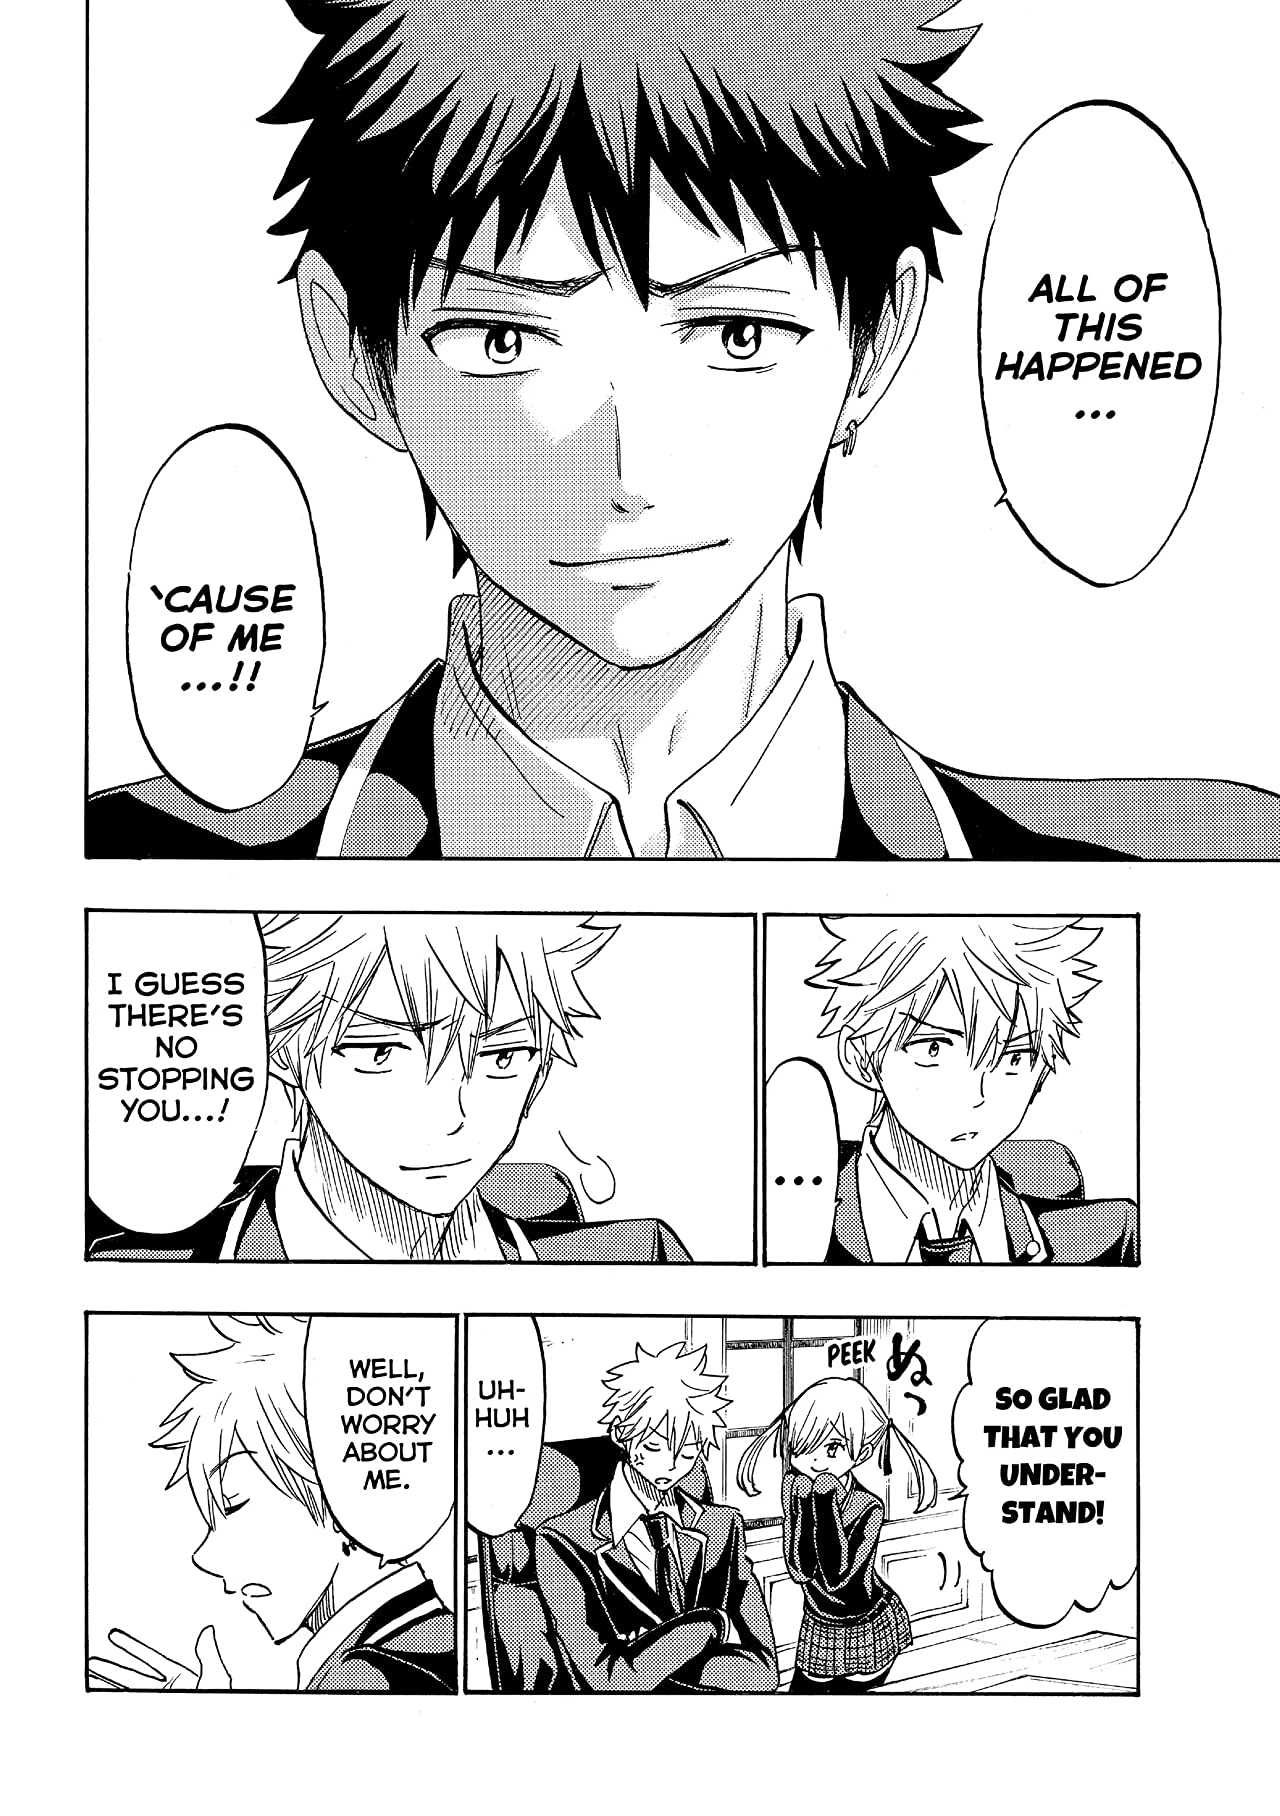 Yamada-kun and the Seven Witches #170